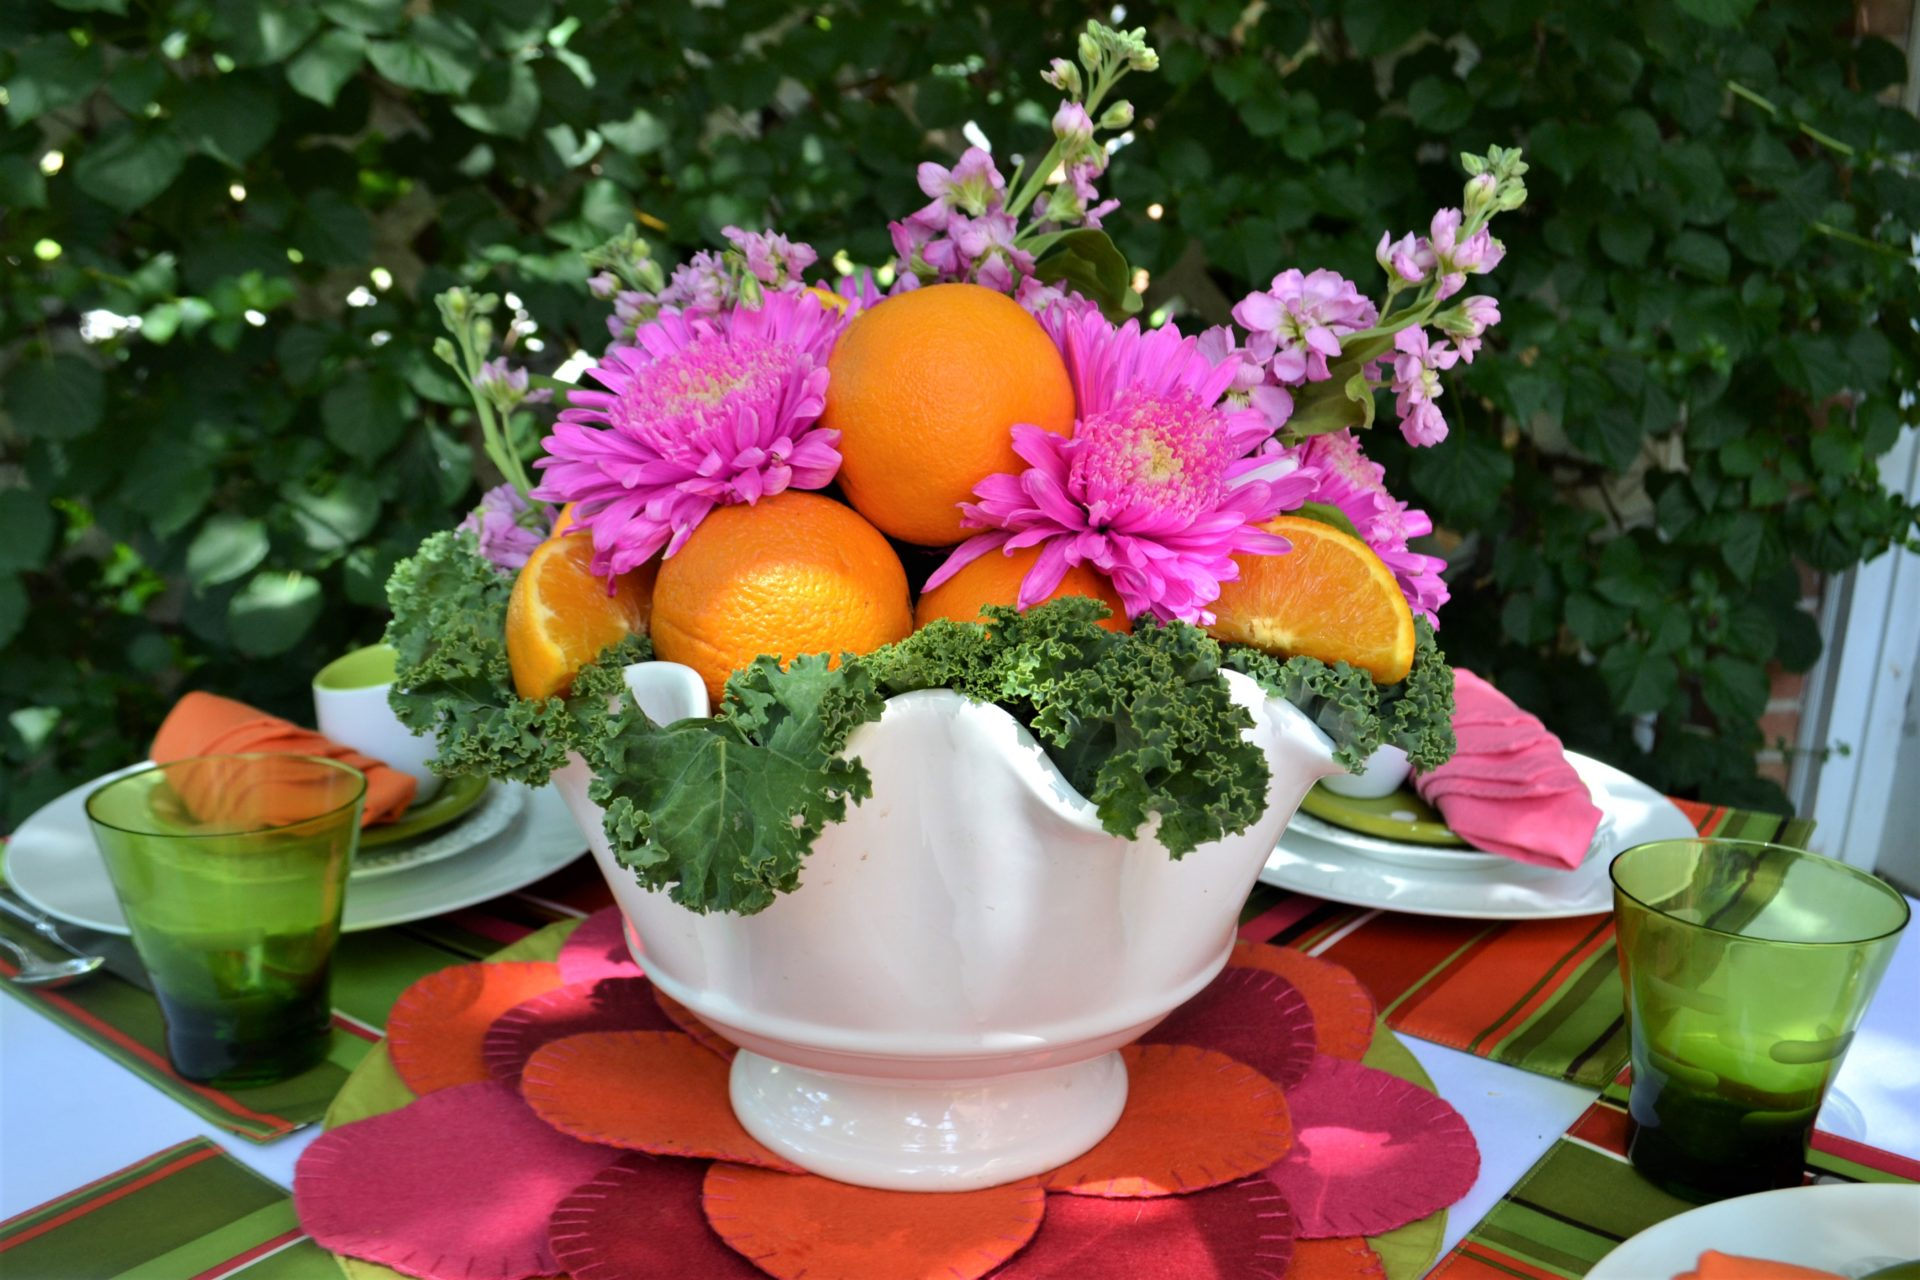 Fruit & Floral Centerpiece setting-lizbushong.com